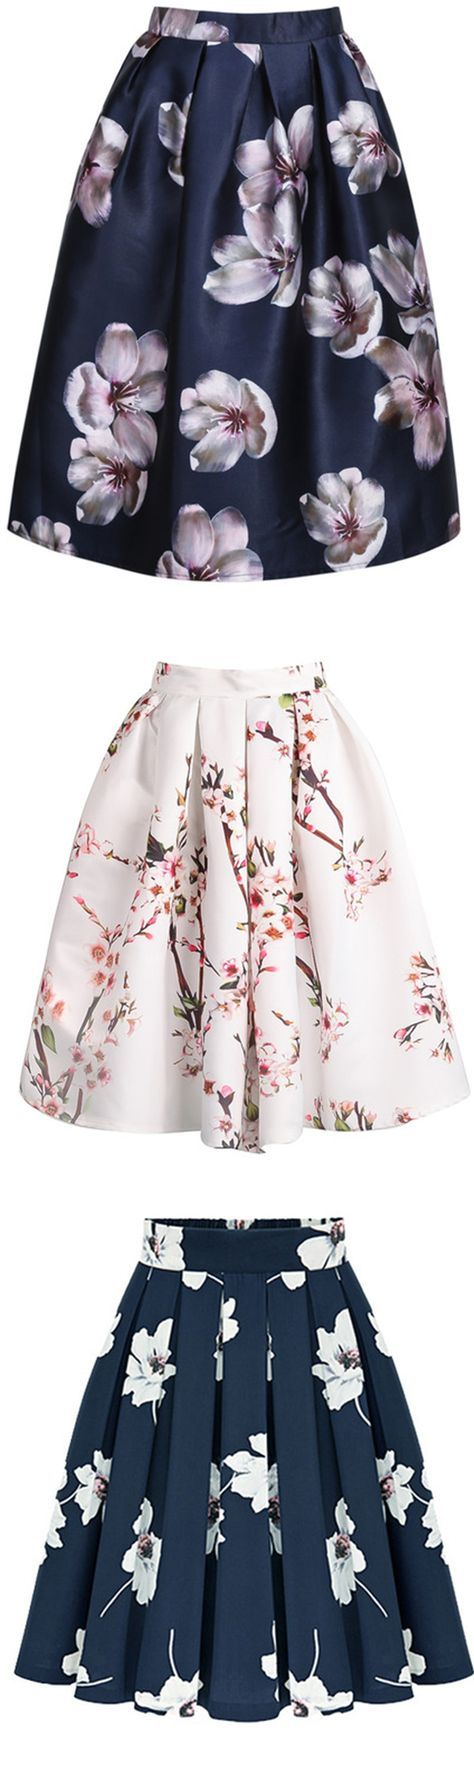 "Floral Pleated Skirt - <a href=""http://m.shein.com"" rel=""nofollow"" target=""_blank"">m.shein.com</a>"